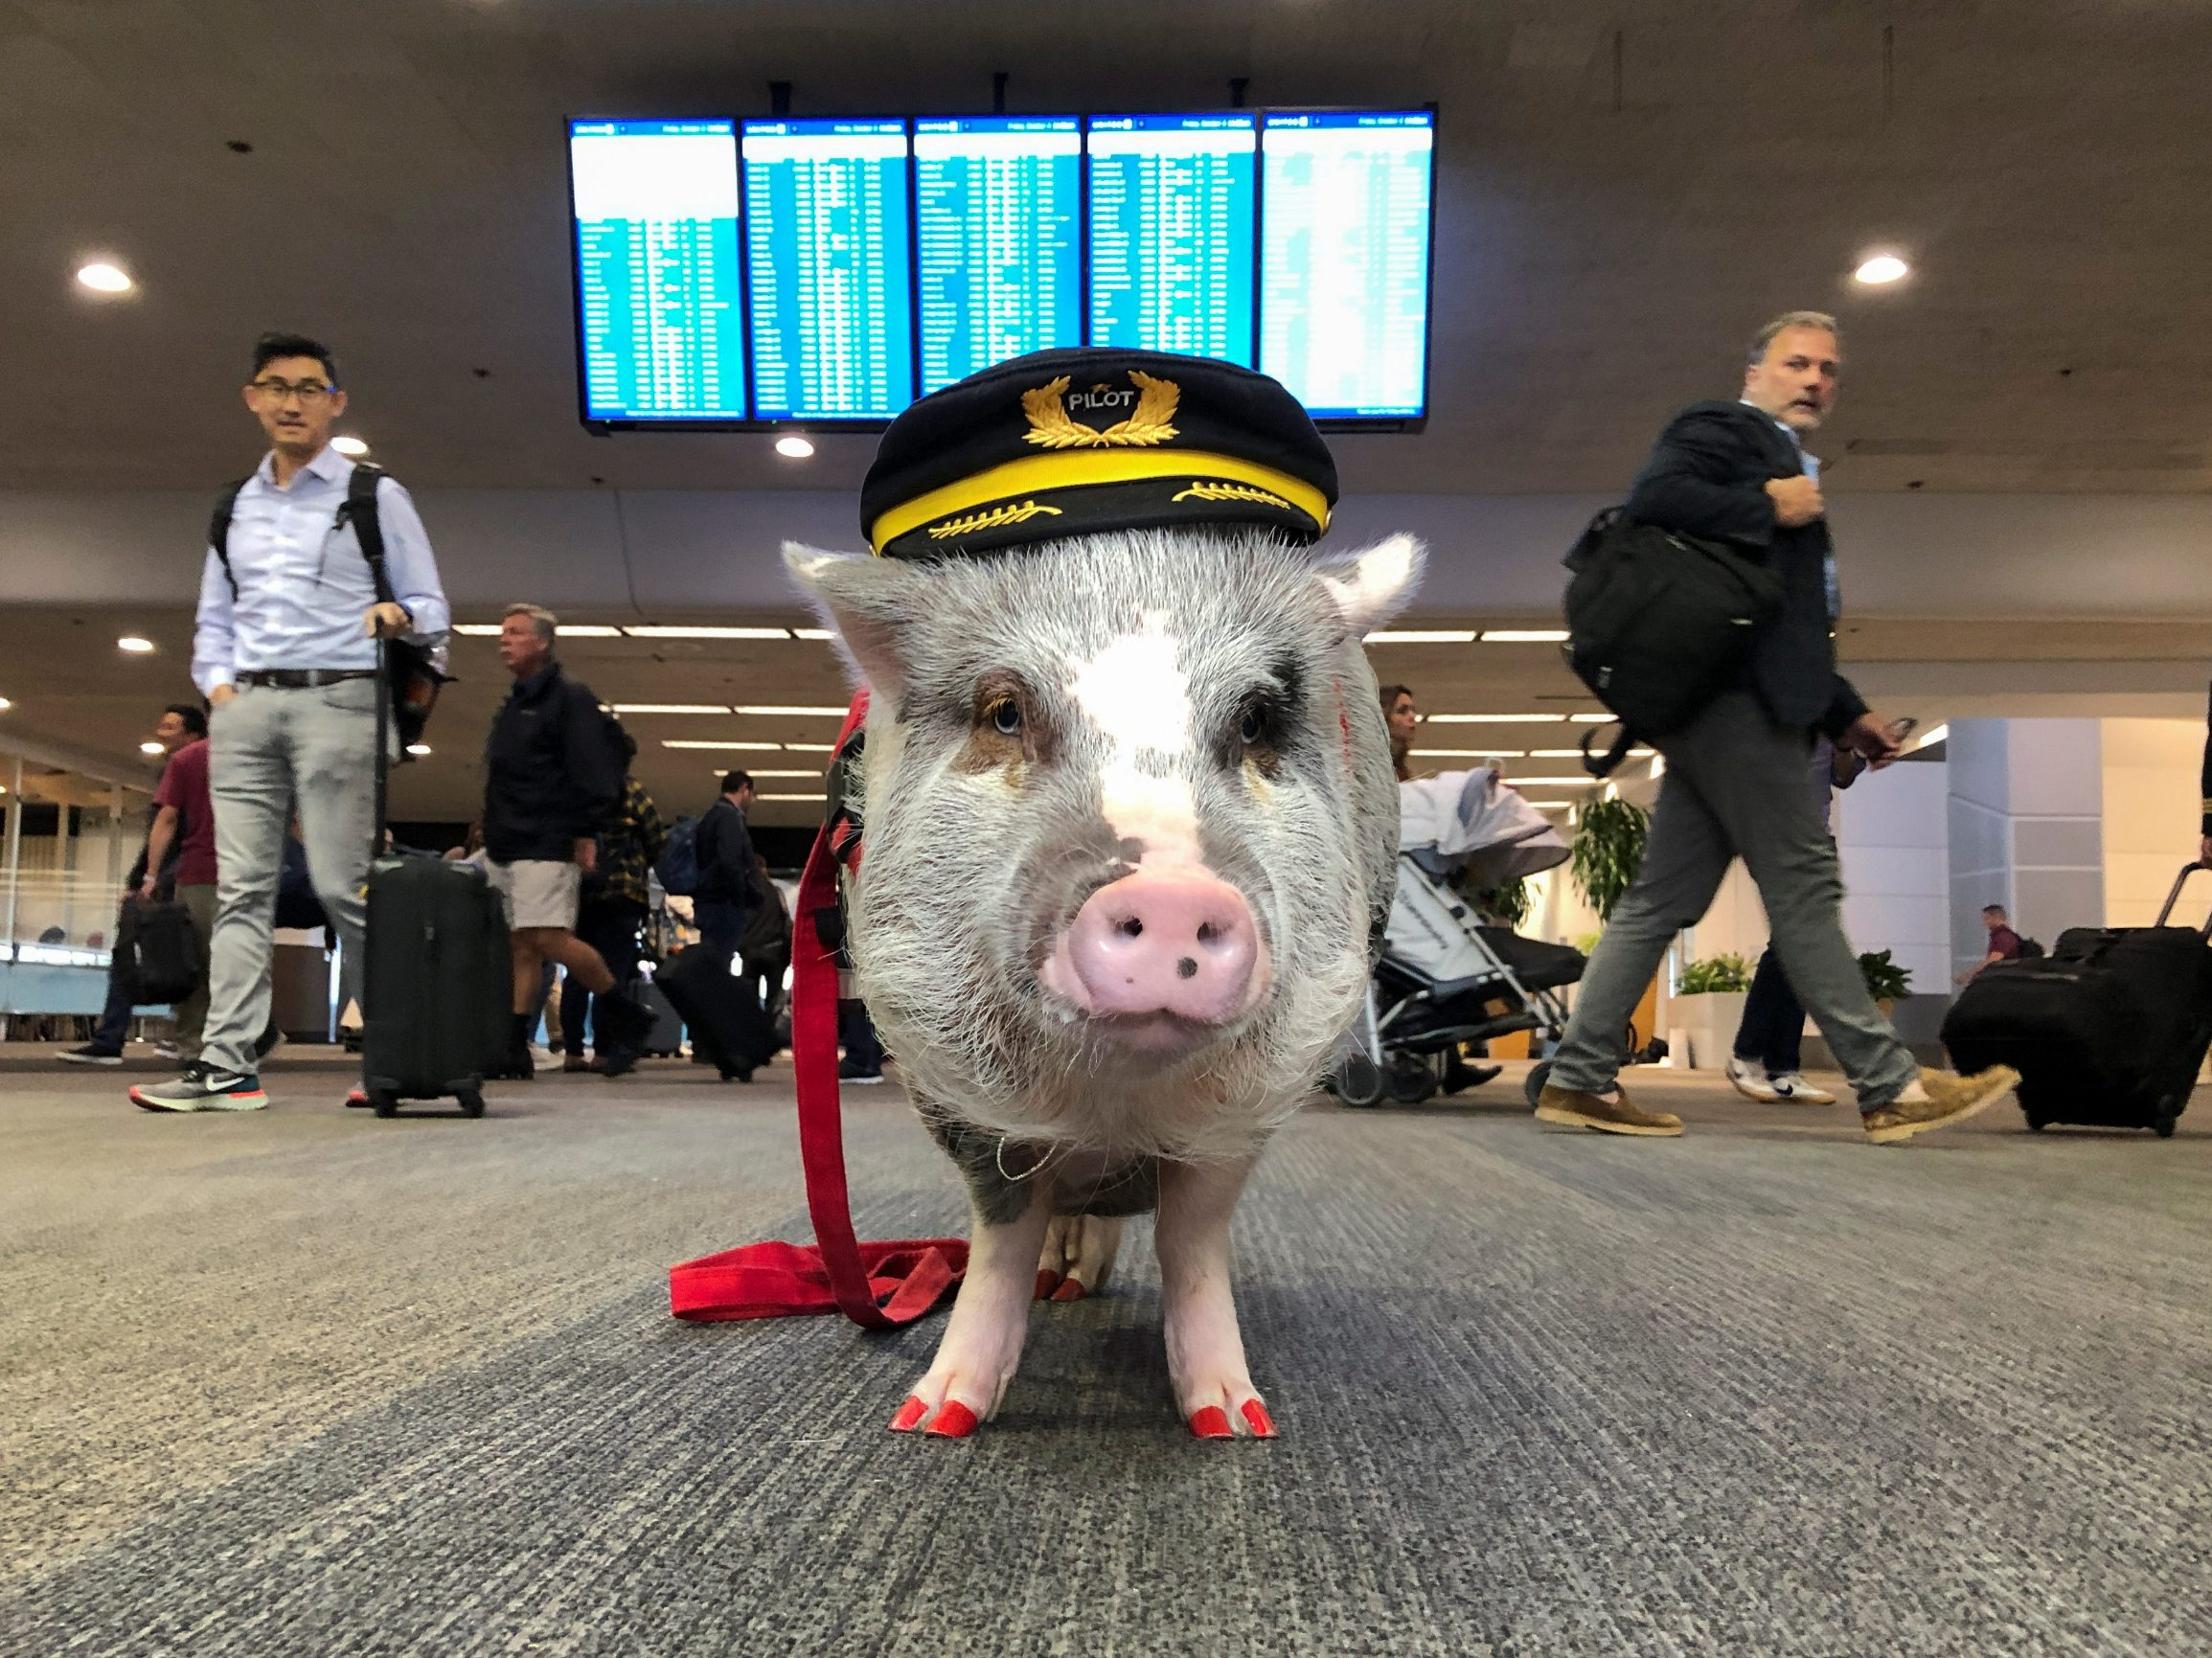 LiLou the therapy pig stands in front of a departures board at San Francisco International Airport in San Francisco, California, U.S. October 4, 2019. Picture taken October 4, 2019. REUTERS/Jane Ross